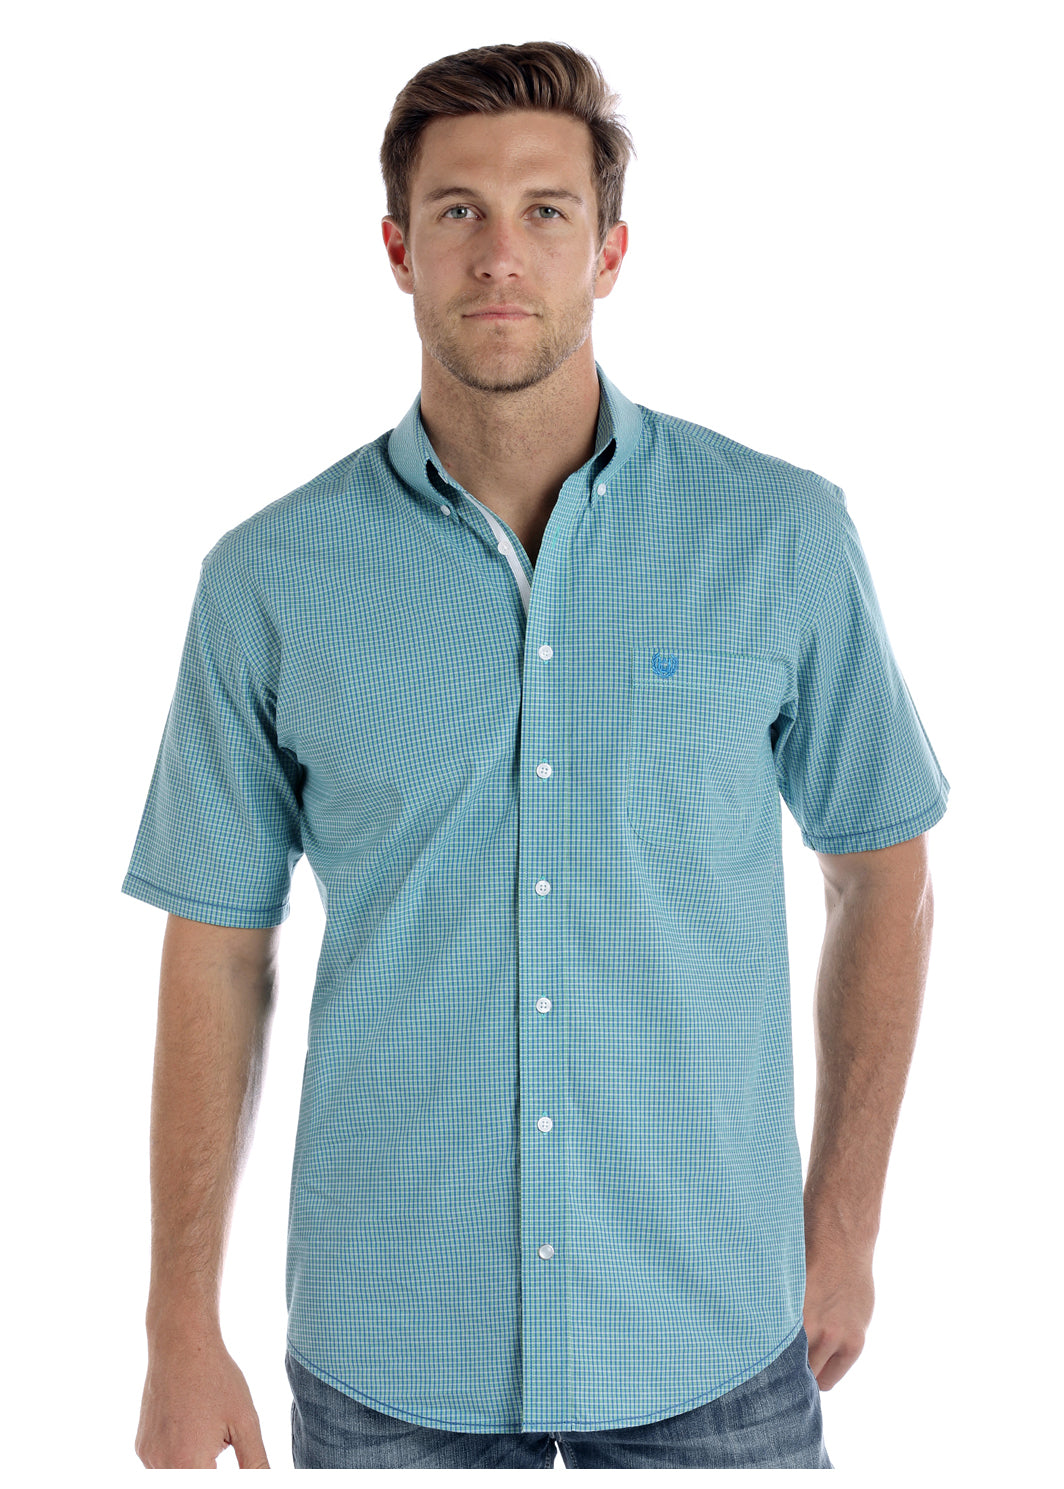 Panhandle Blue Plaid Men's Short Sleeve Shirt